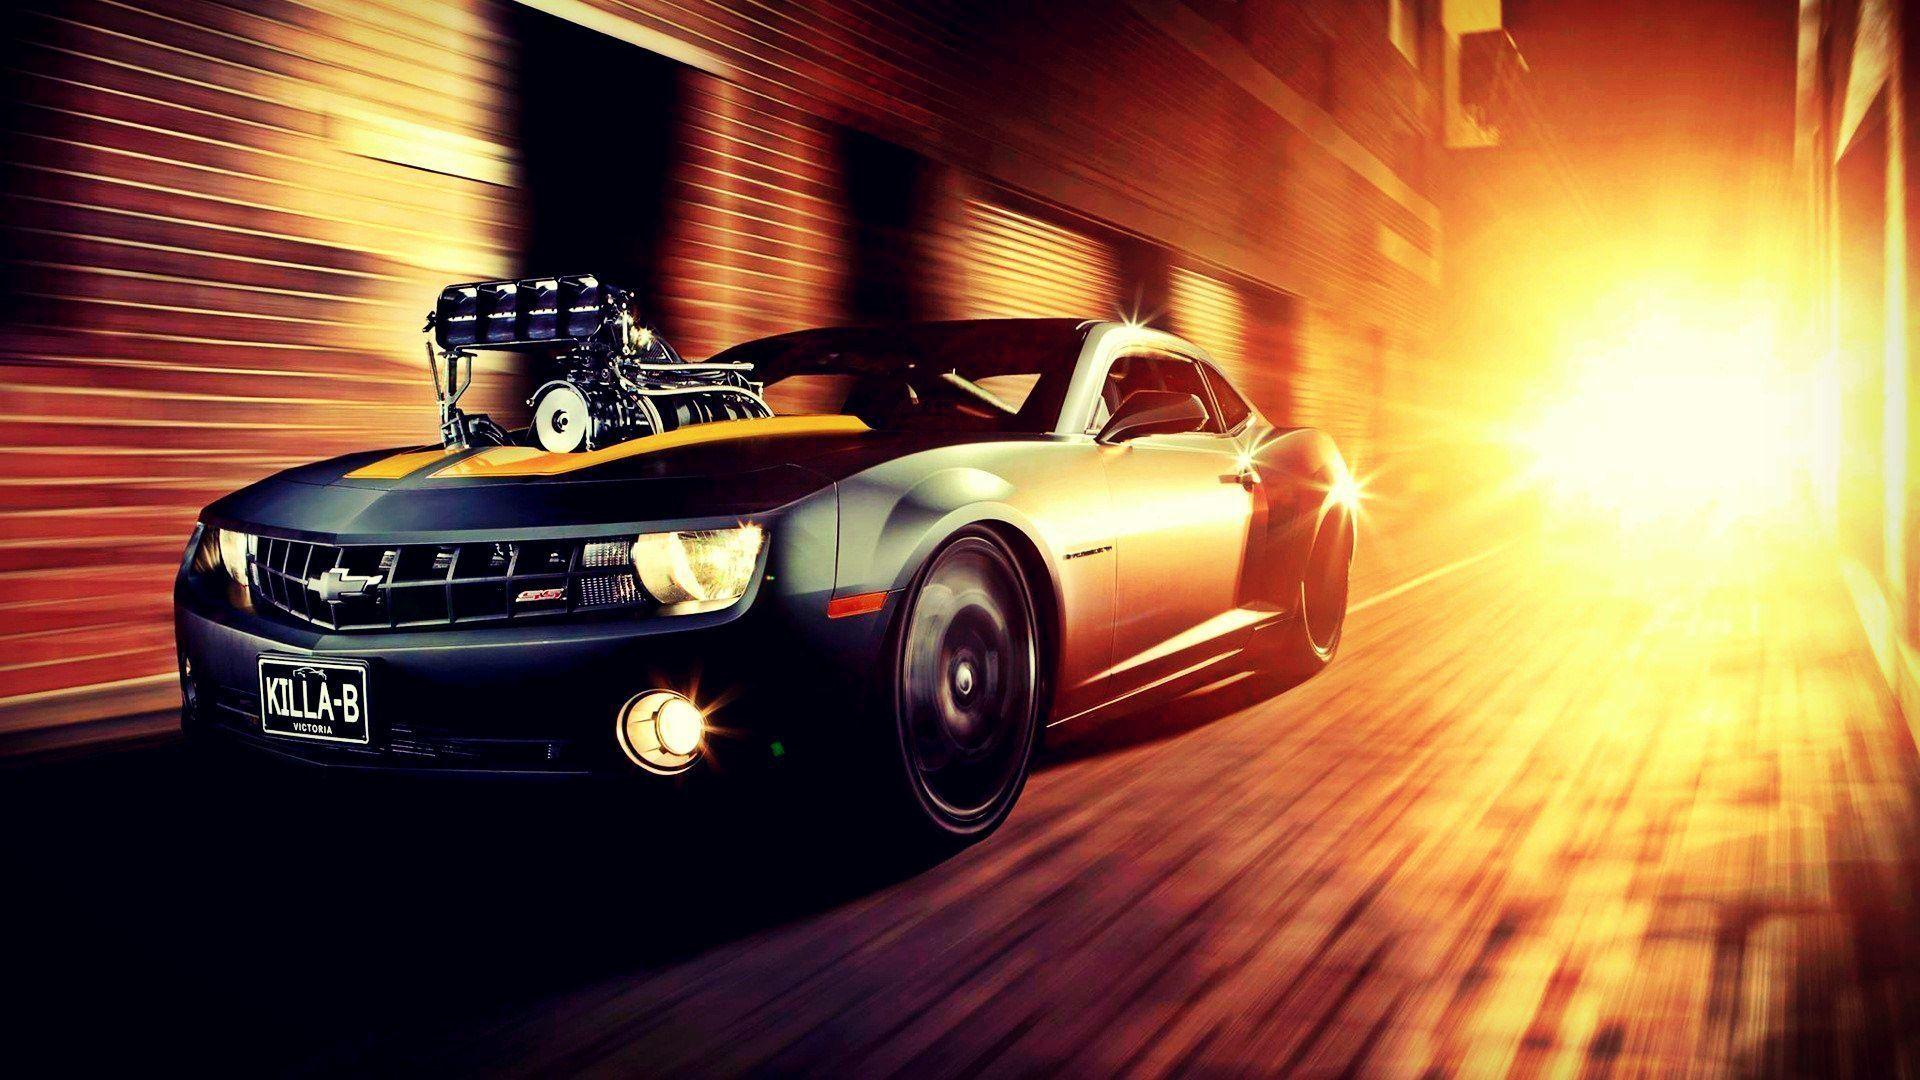 Cool Cars 2014 Wallpaper Widescreen 2 HD Wallpapers | lzamgs.